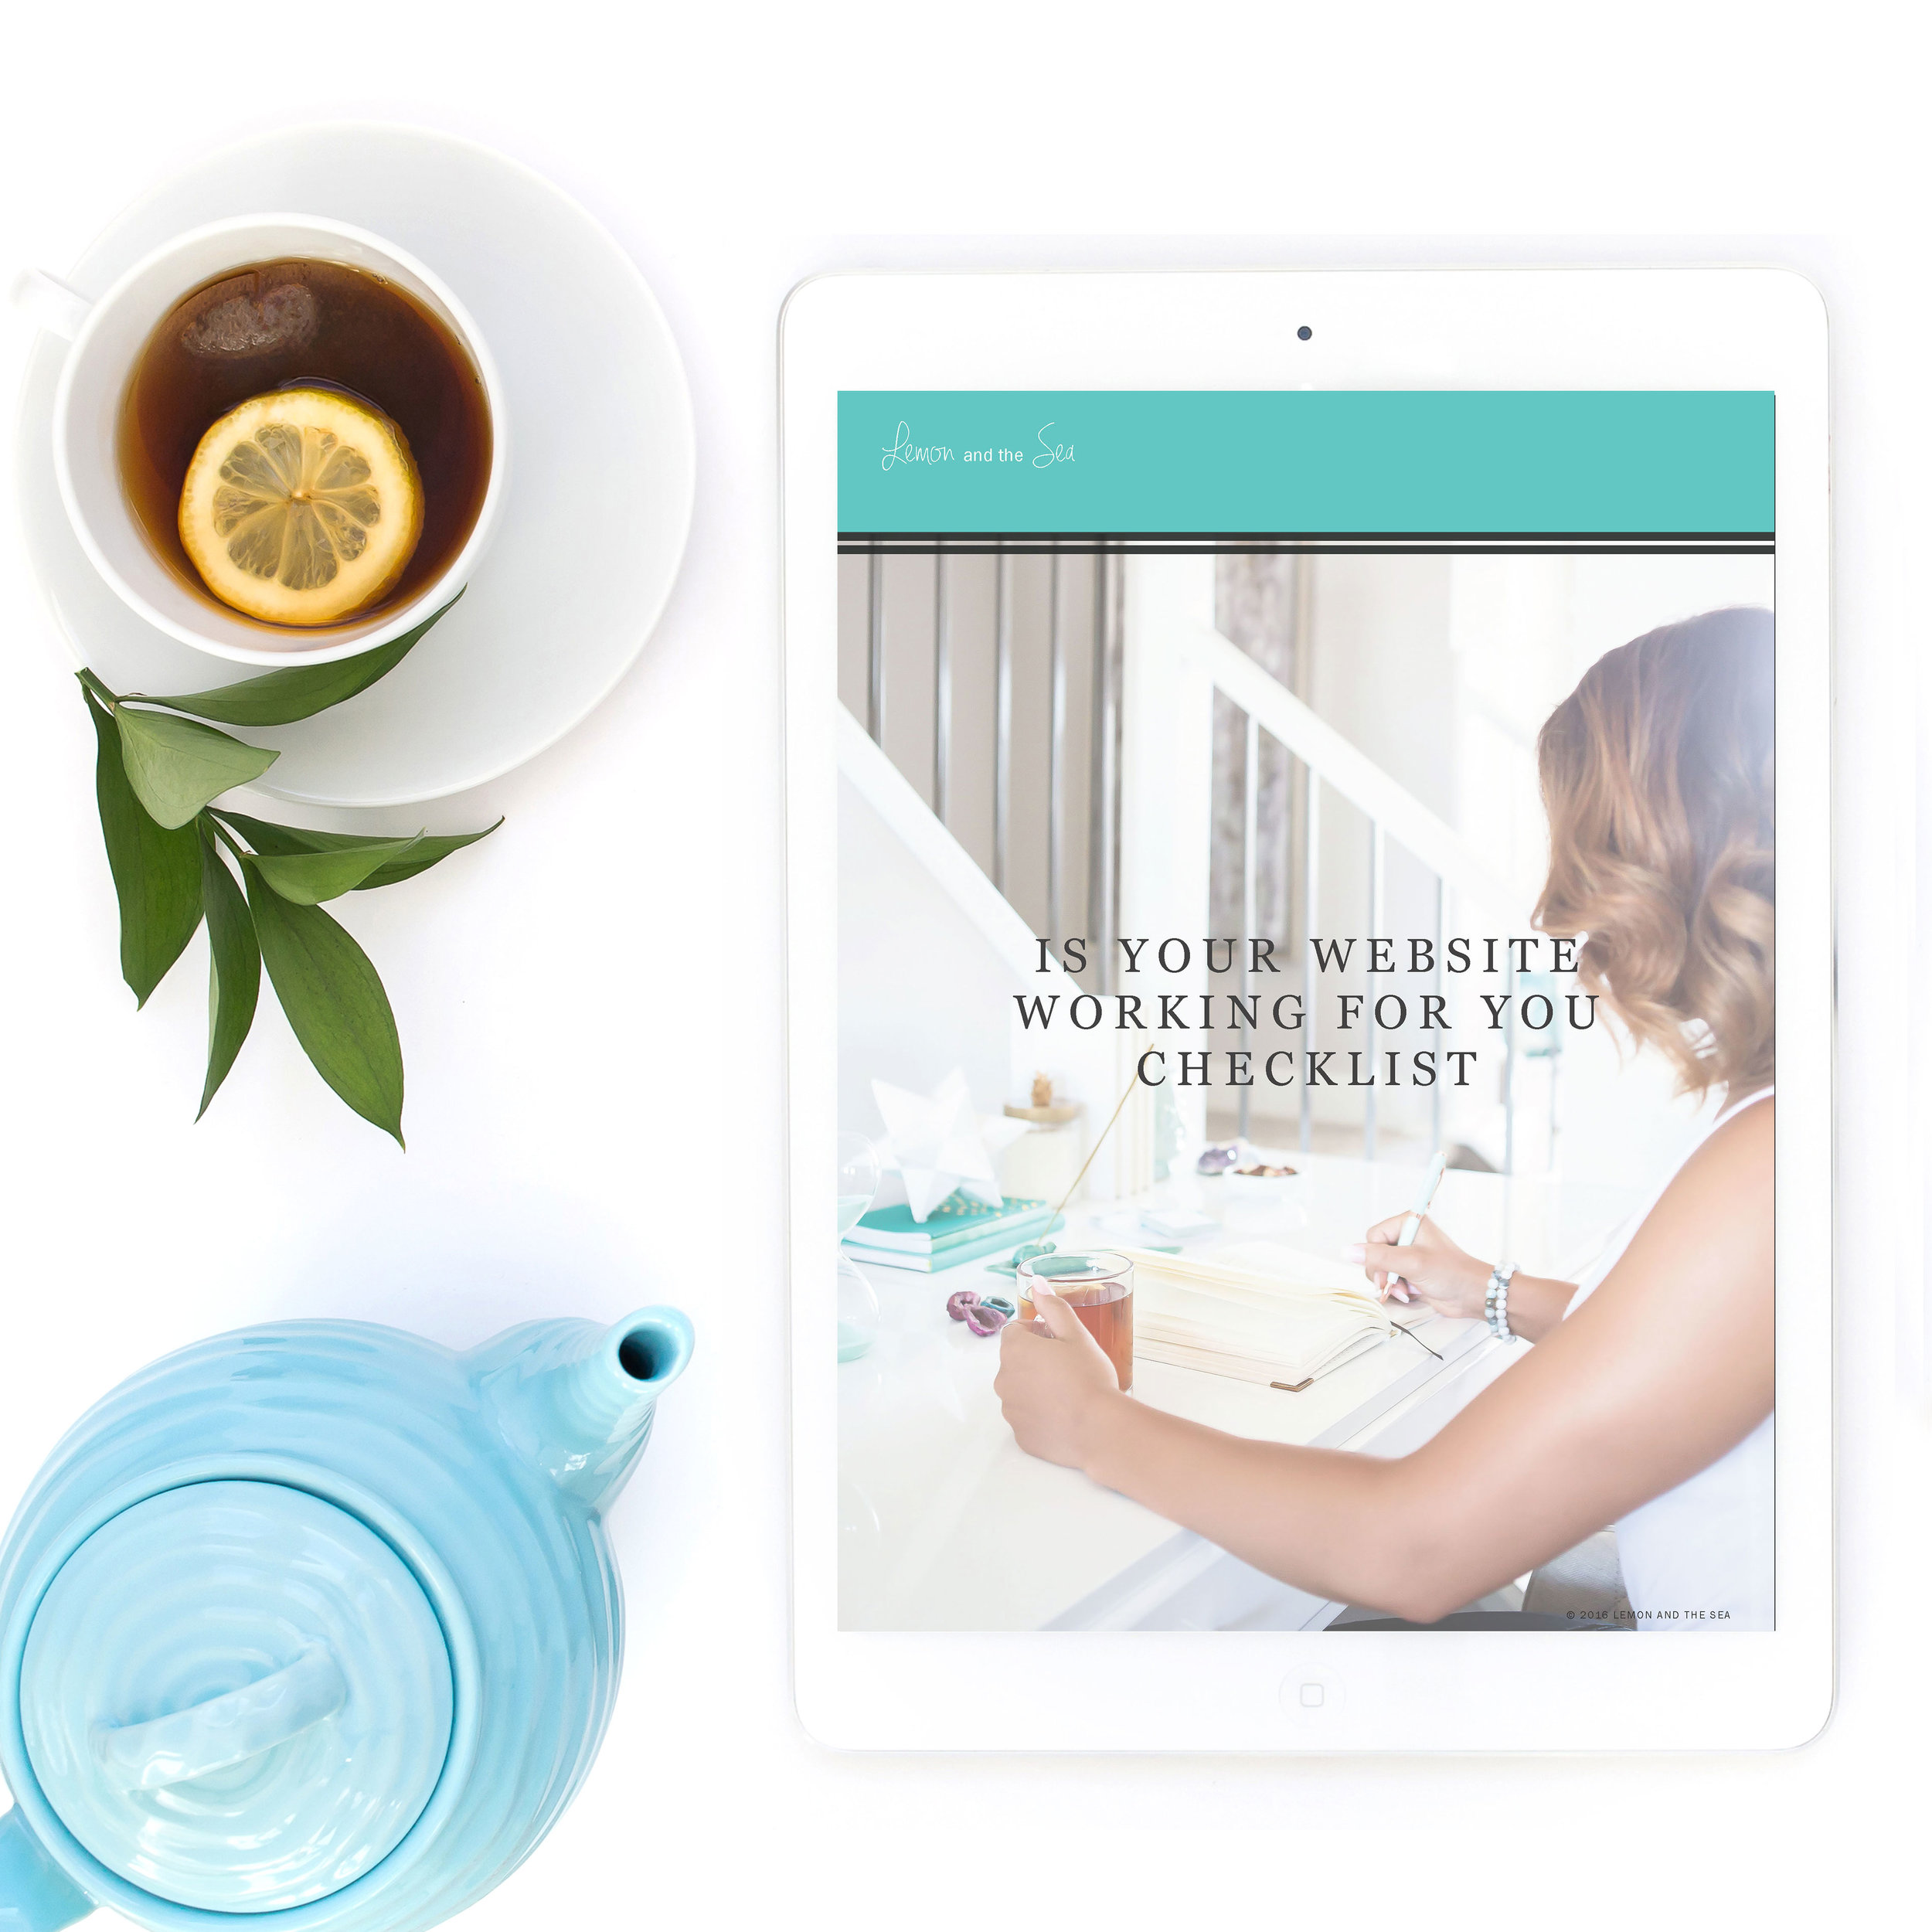 Is Your Website Working for You? free guide from Lemon and the Sea for strategic website design with beauty and brains